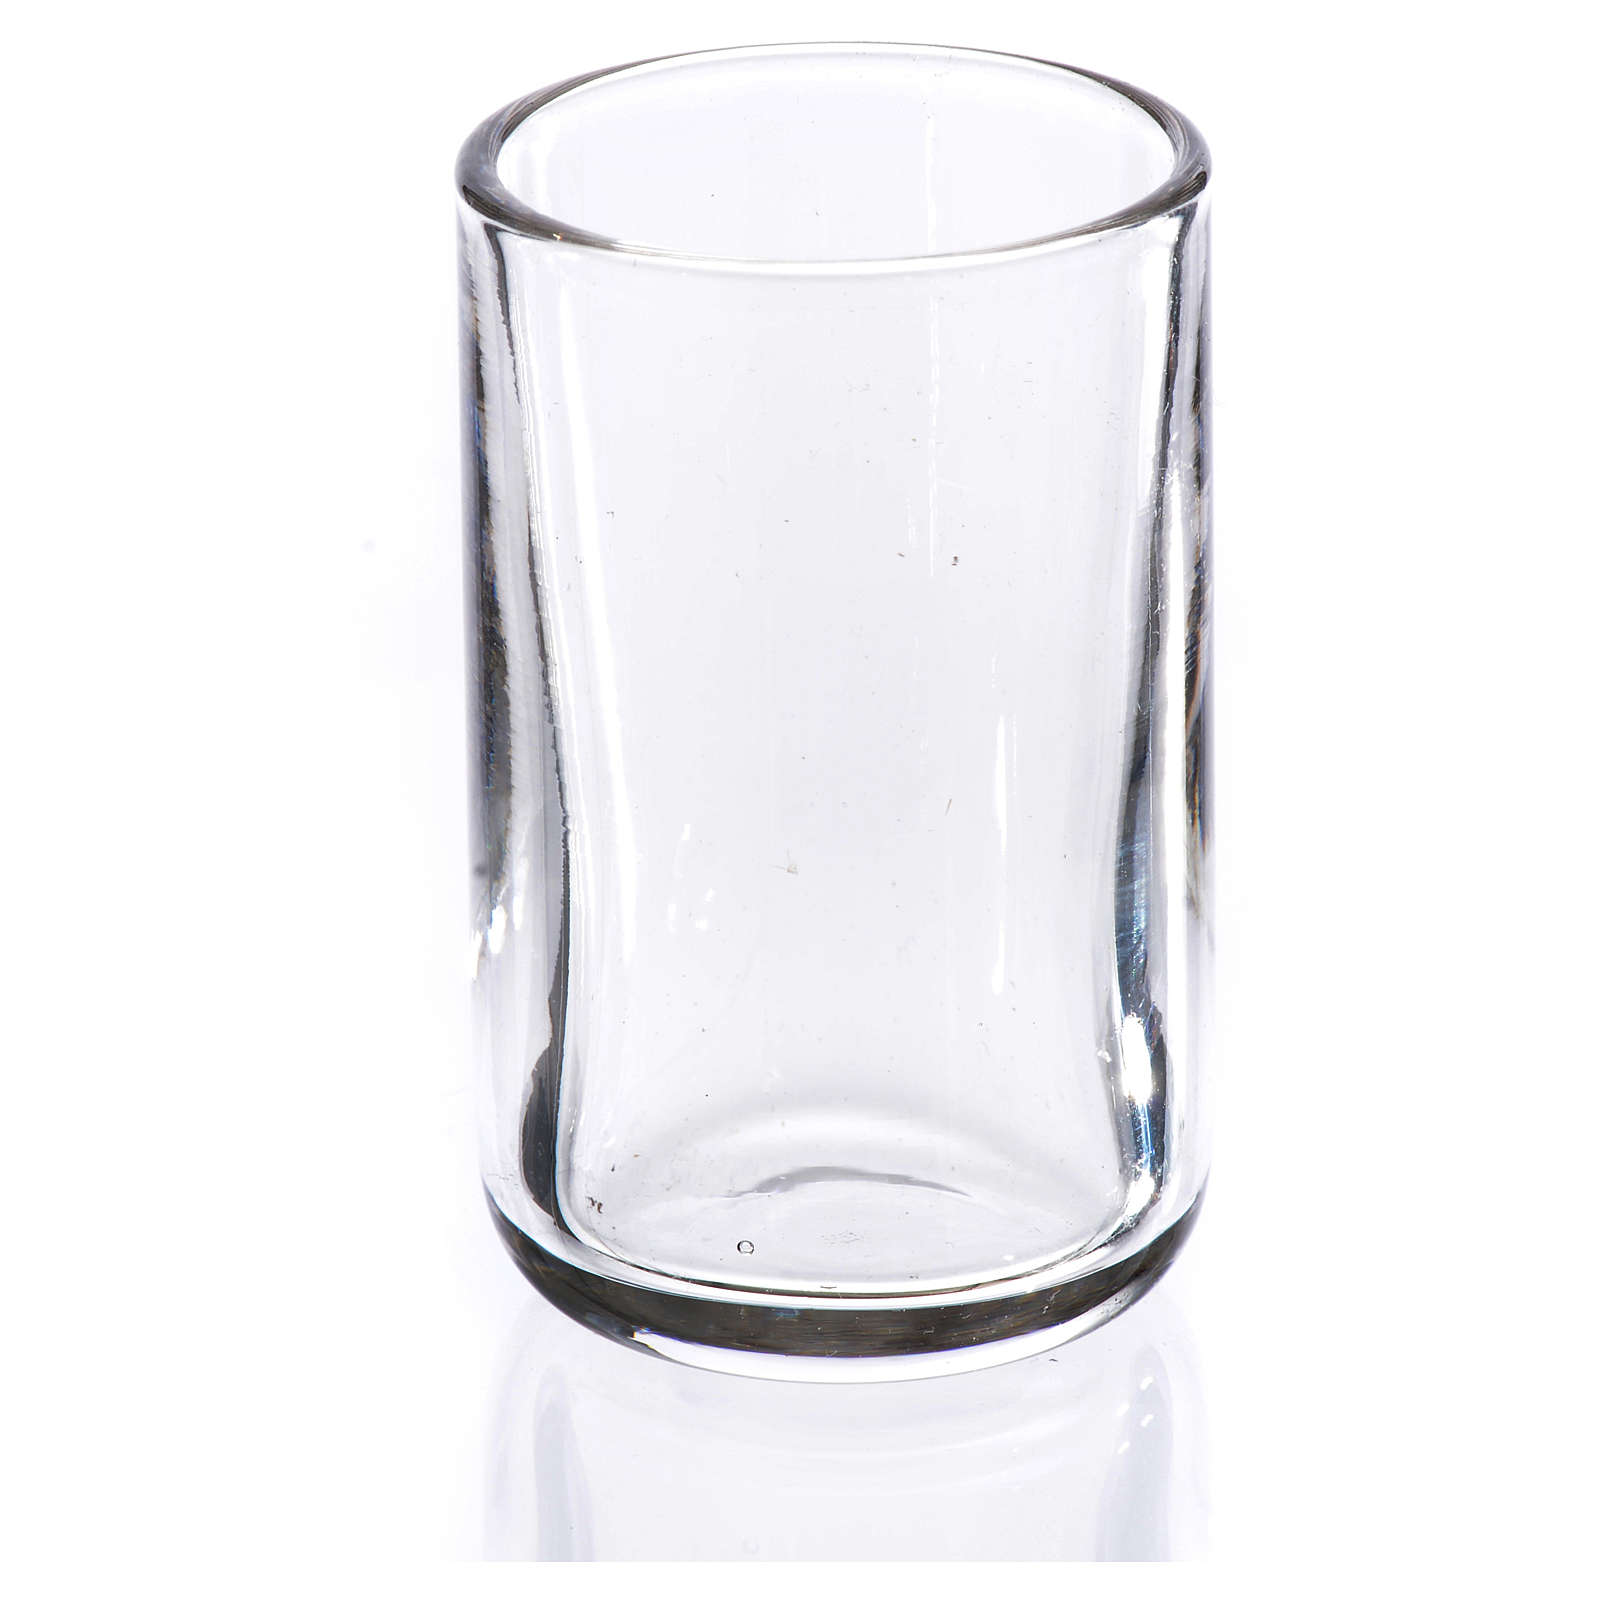 Spare glass bottle for Holy Oil container 3